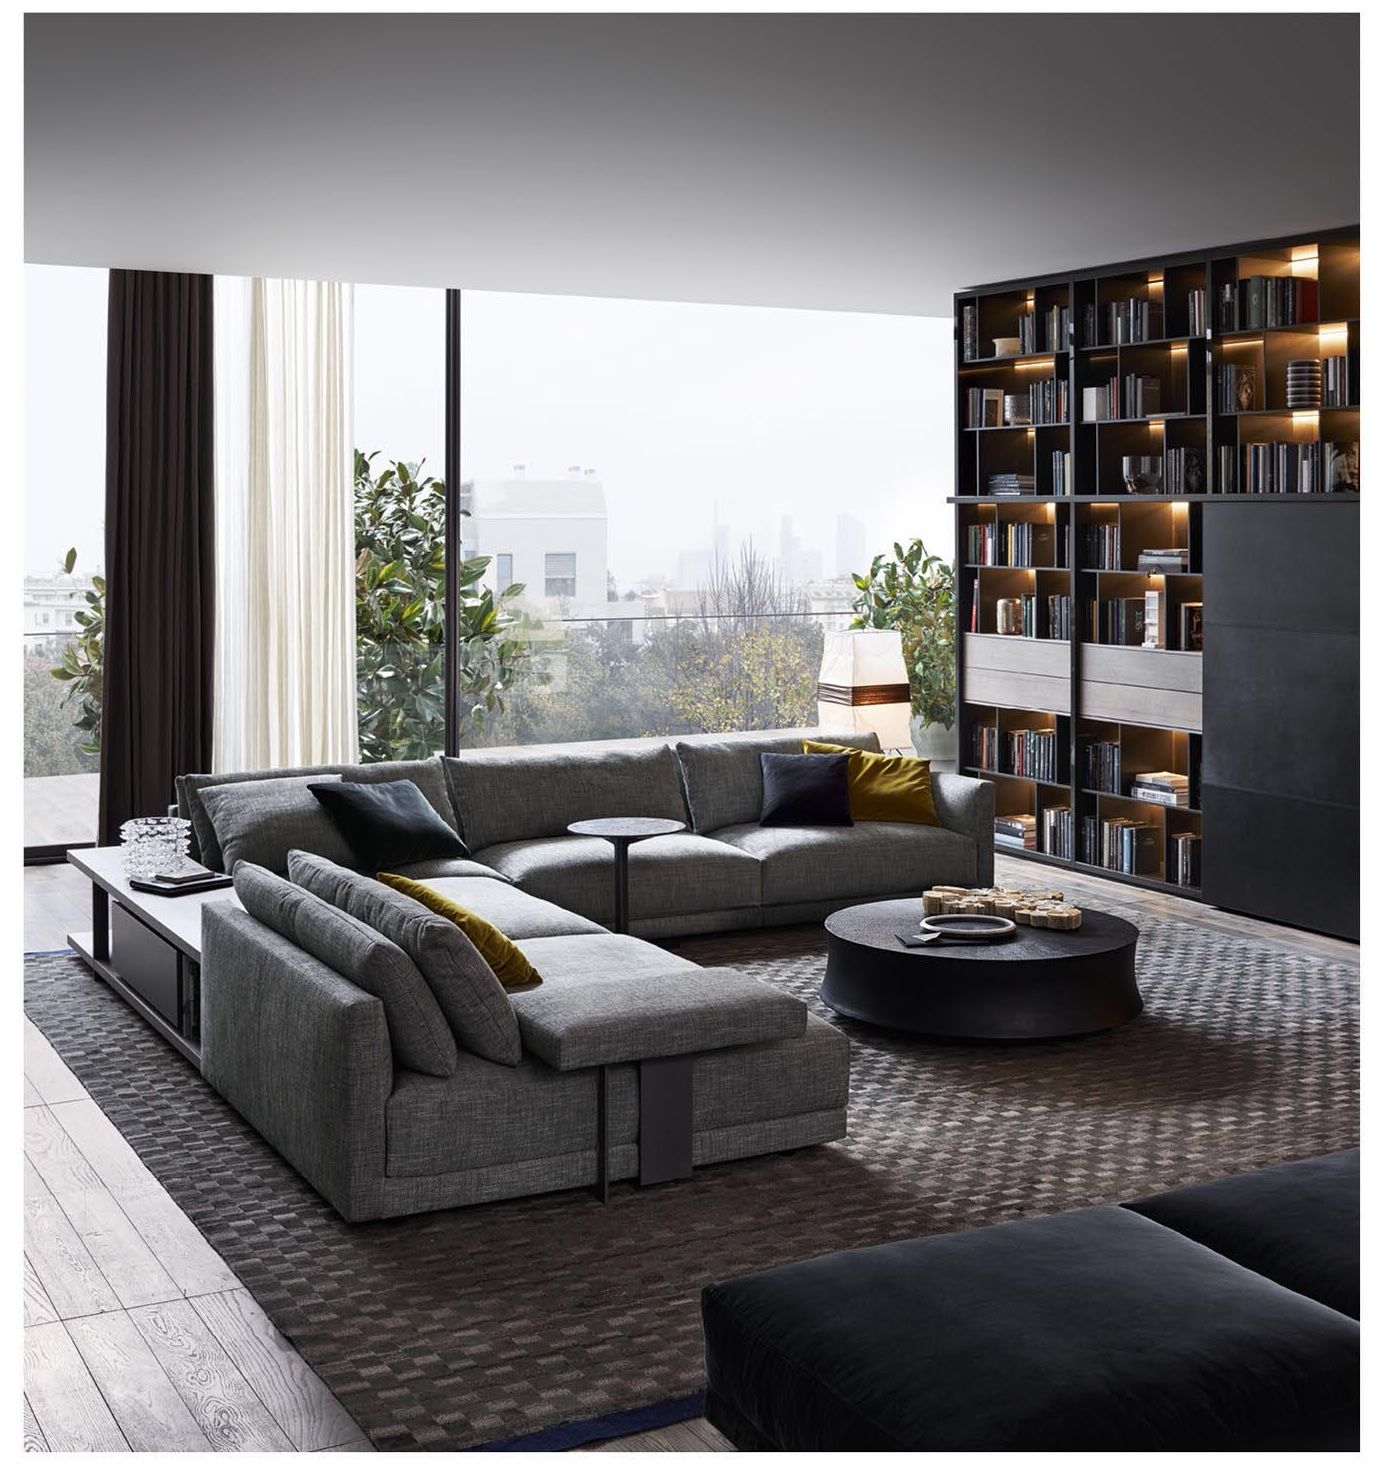 Bristol Sofa POLIFORM | SOFA | Pinterest | Bristol, Living rooms ...